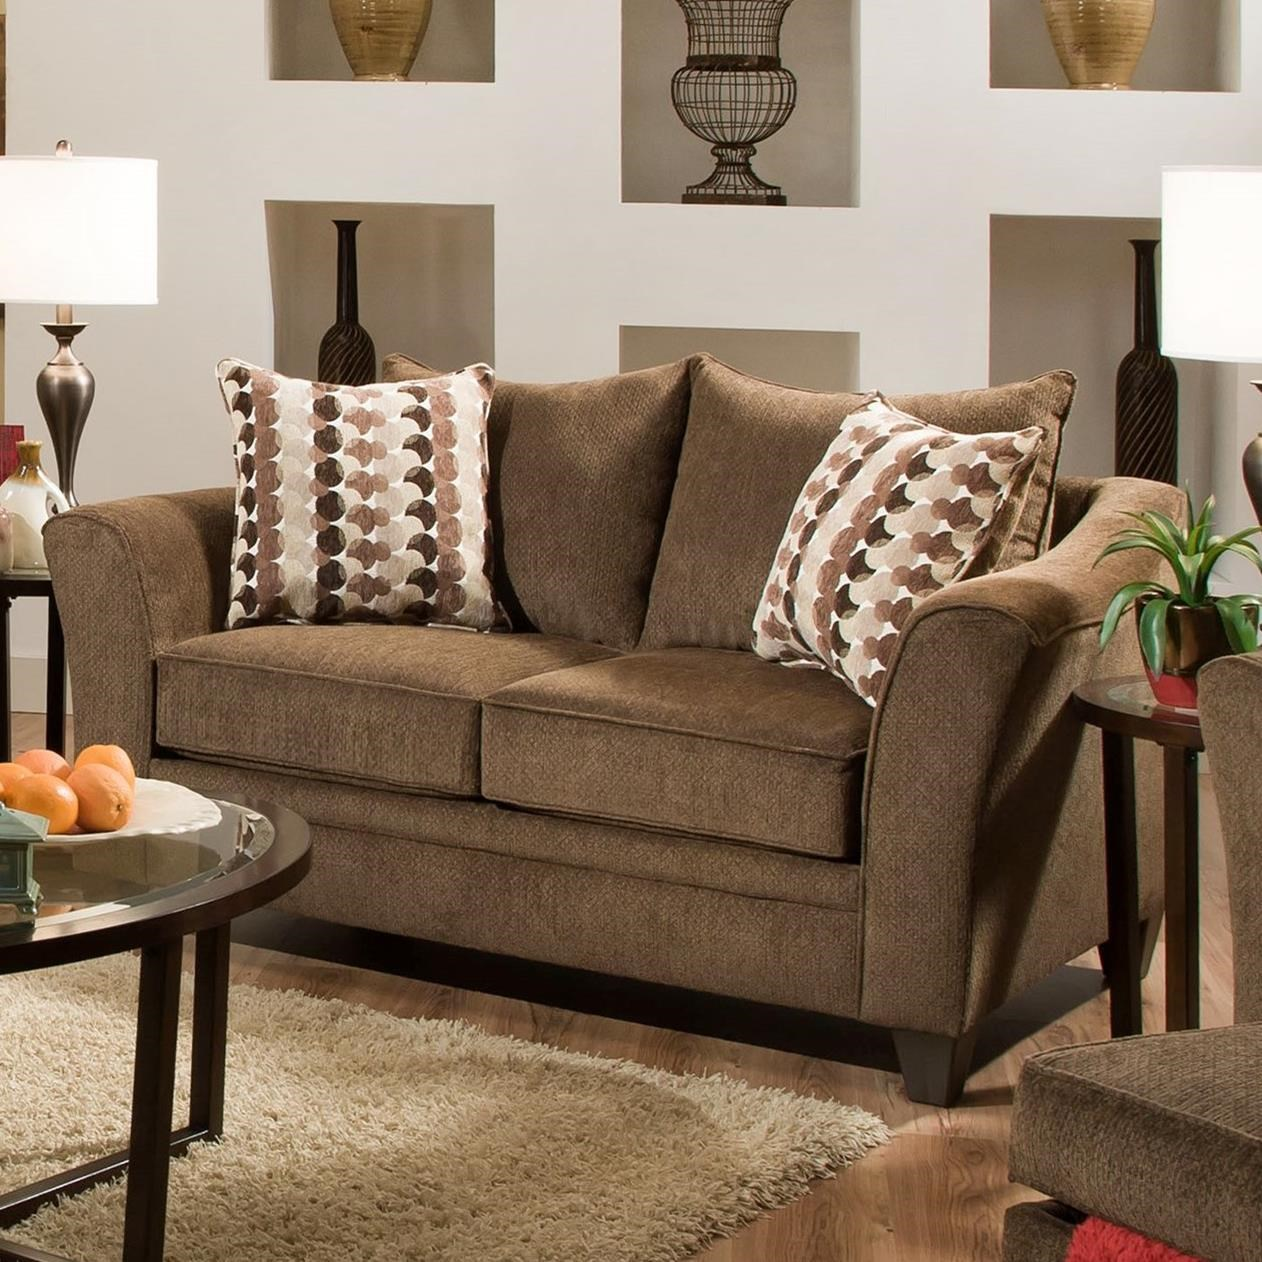 United Furniture Industries 6485 Transitional Loveseat - Item Number: 6485Loveseat-AlbanyChestnut